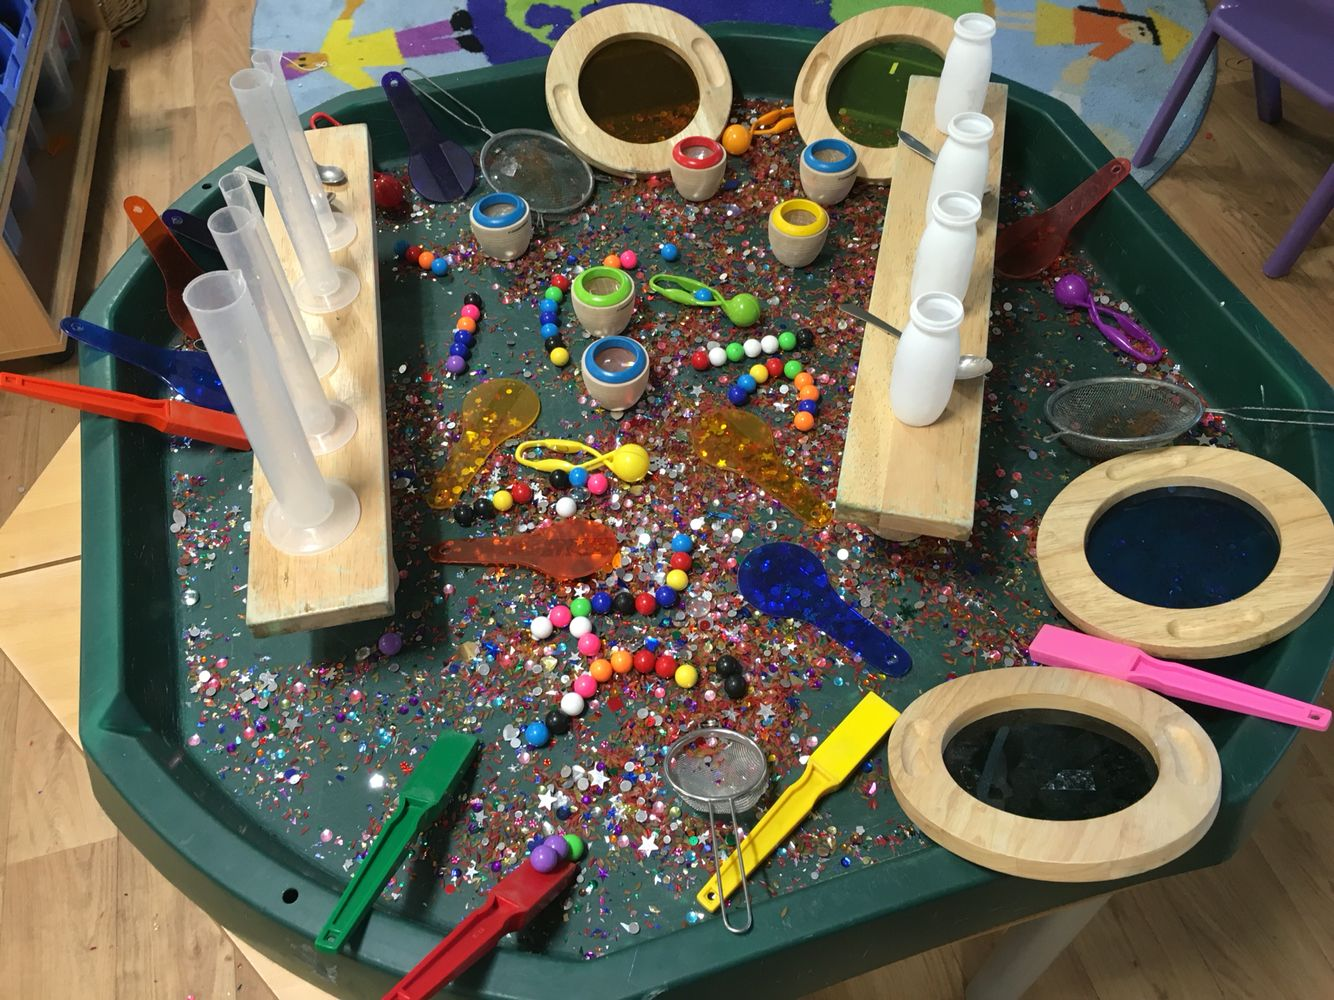 colour mixing activities eyfs : Colour Mixing Activities Eyfs Eyfs Science In The Reception Class Using Magnets And Colour Paddles